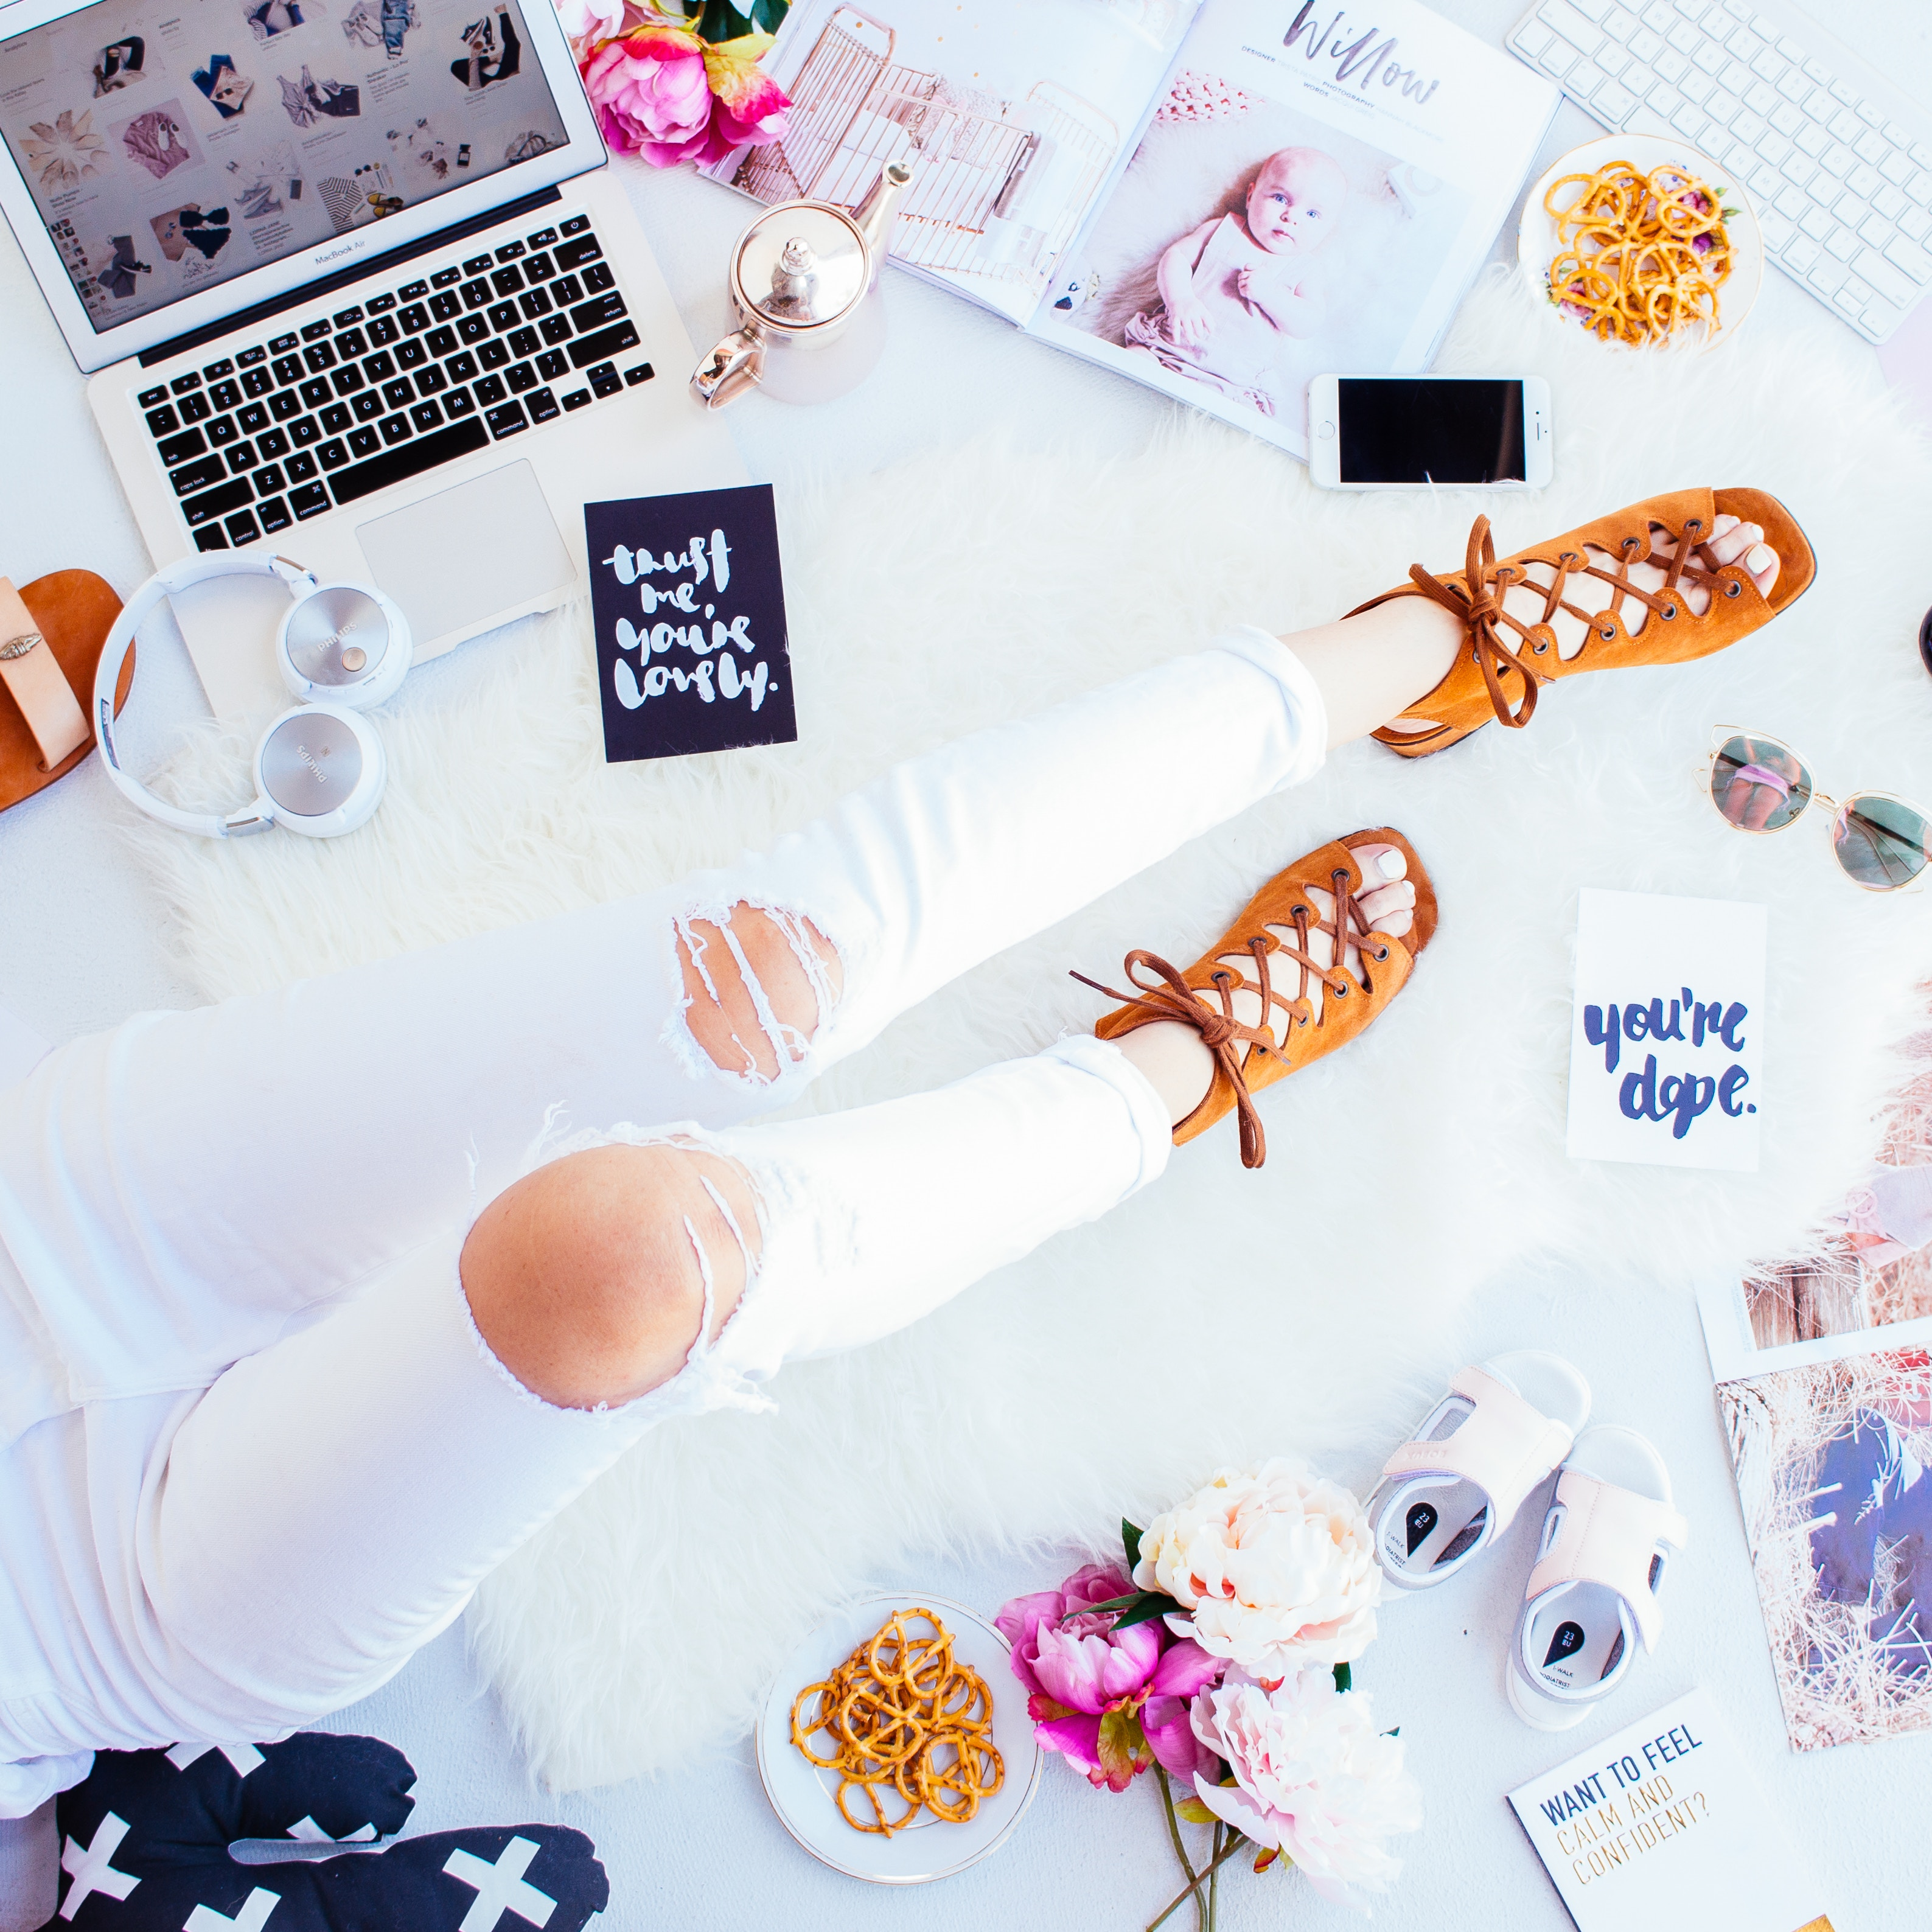 How To Create A Vision Board. Simple #ideas on how to make a vision that that truly inspires you! I loved the real life example of how the law of attraction that really work when you create a vision board! #goals #momboss #bossbabe #inspiration #motivation #goalsetting #visionboard #lawofattraction #girlboss #mindset #dreams #DIY